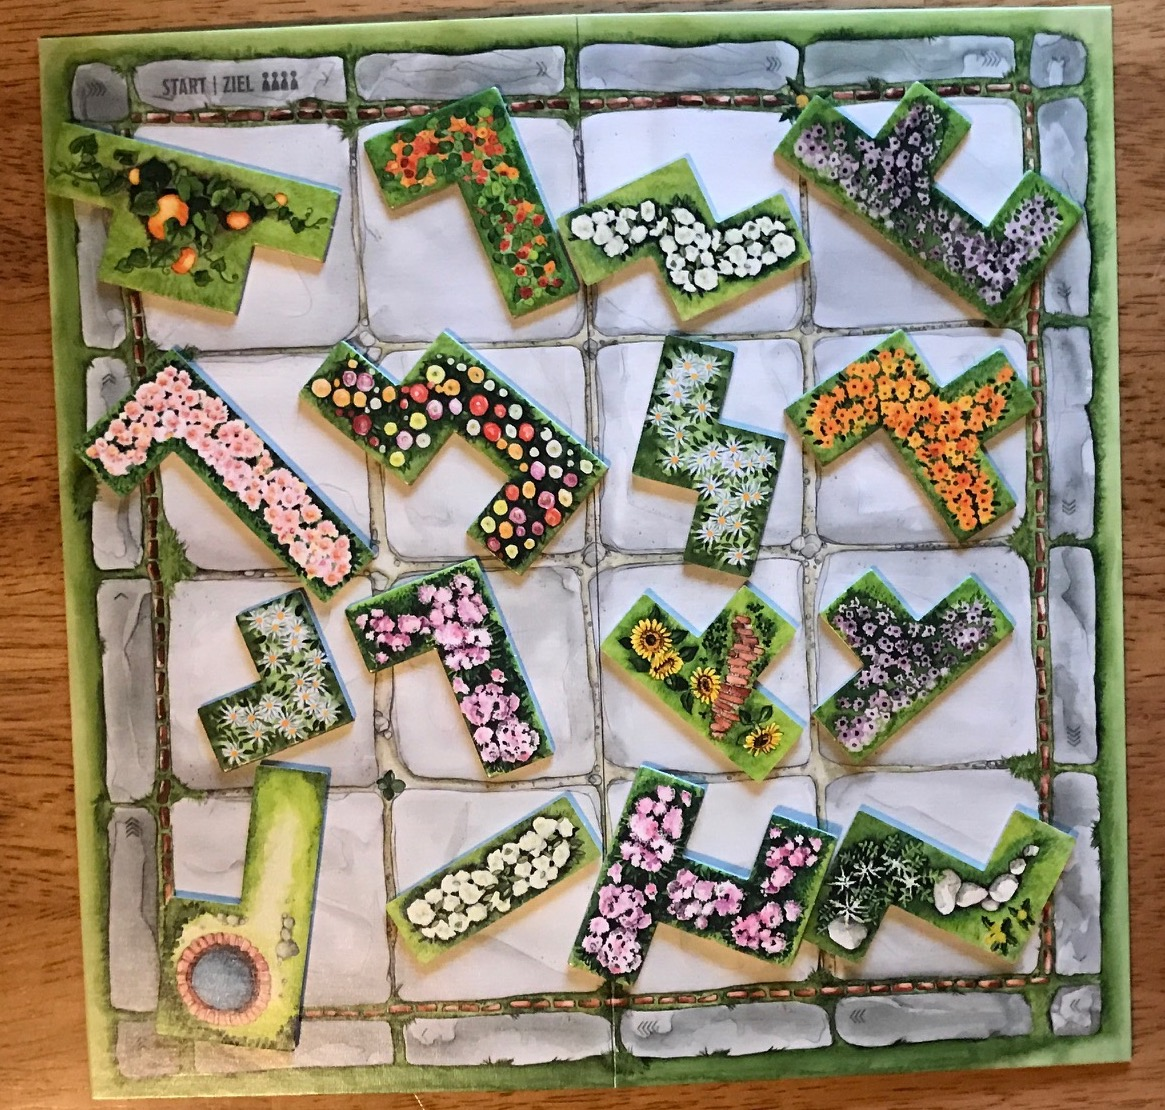 The Game Will Last Six Rounds, And The Player With The Most Points At The  End Of The Sixth Round Wins. A U201cgardener Dieu201d Travels Around The Nursery  Board, ...